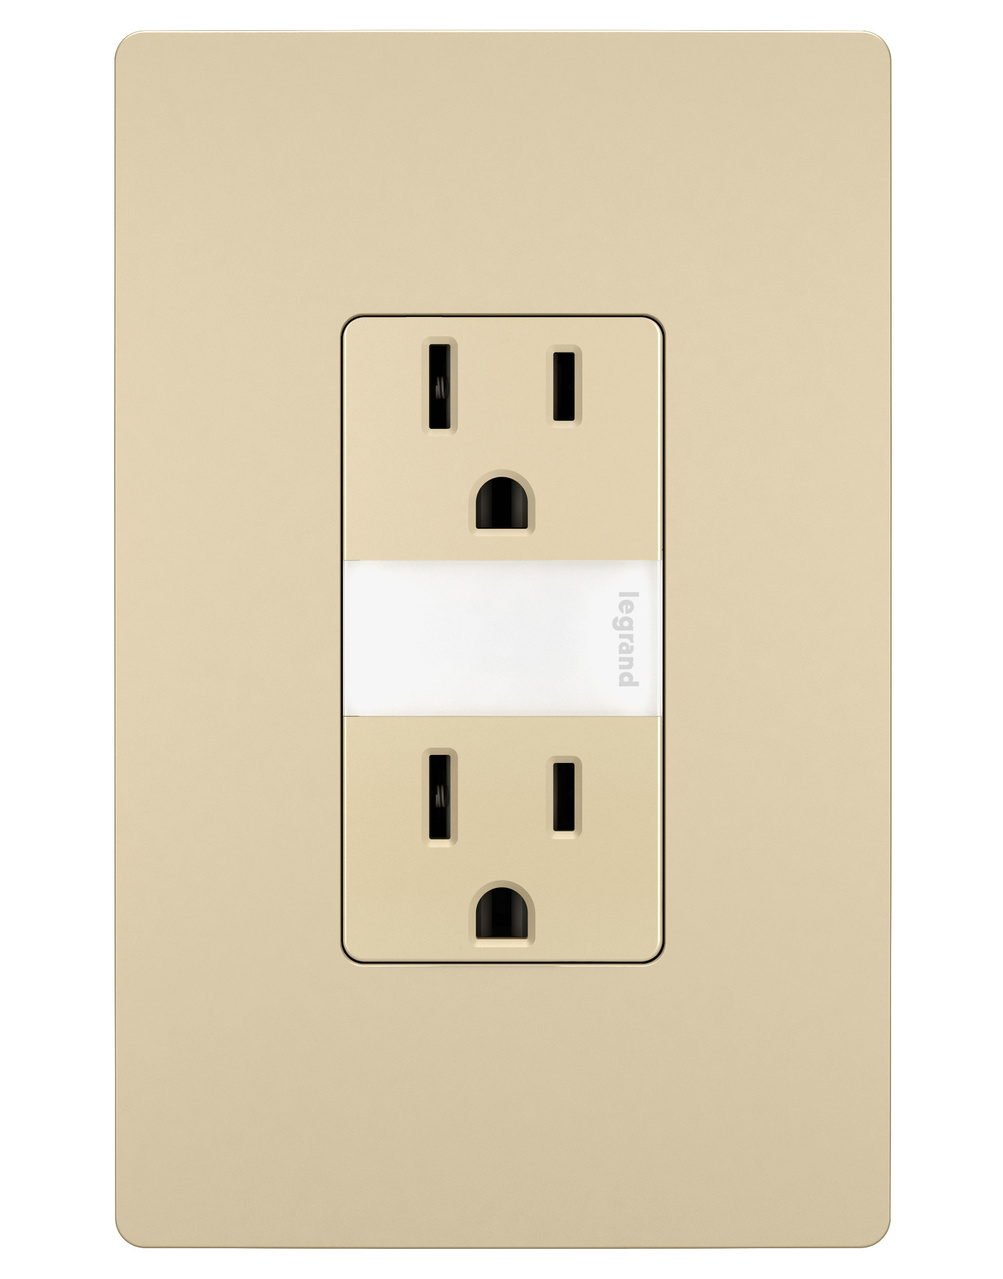 Night Light with Two 15A Tamper-Resistant Outlets, Ivory